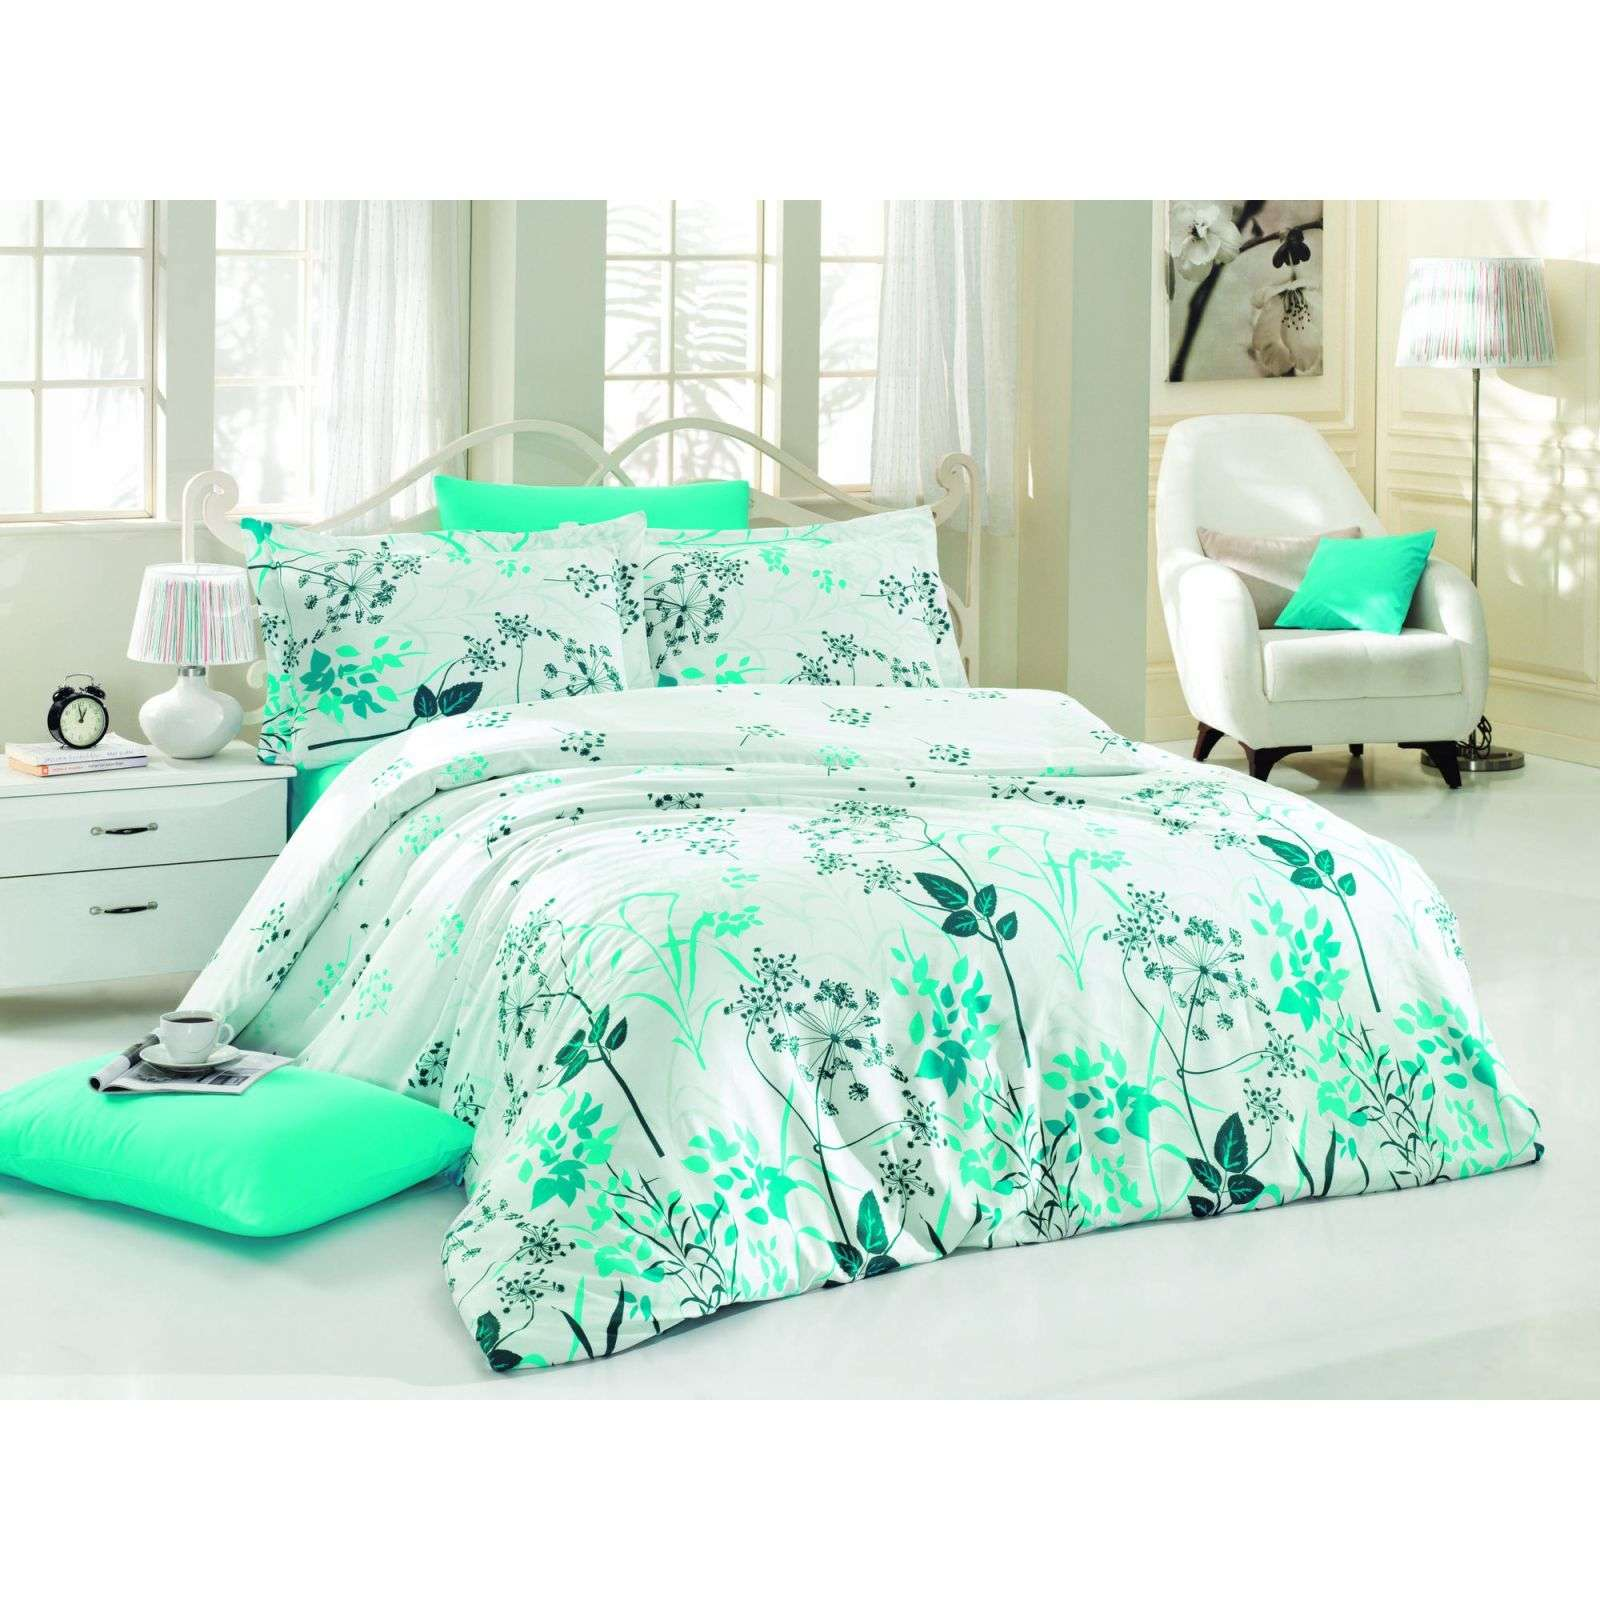 nazenin parure de lit turquoise brandalley. Black Bedroom Furniture Sets. Home Design Ideas